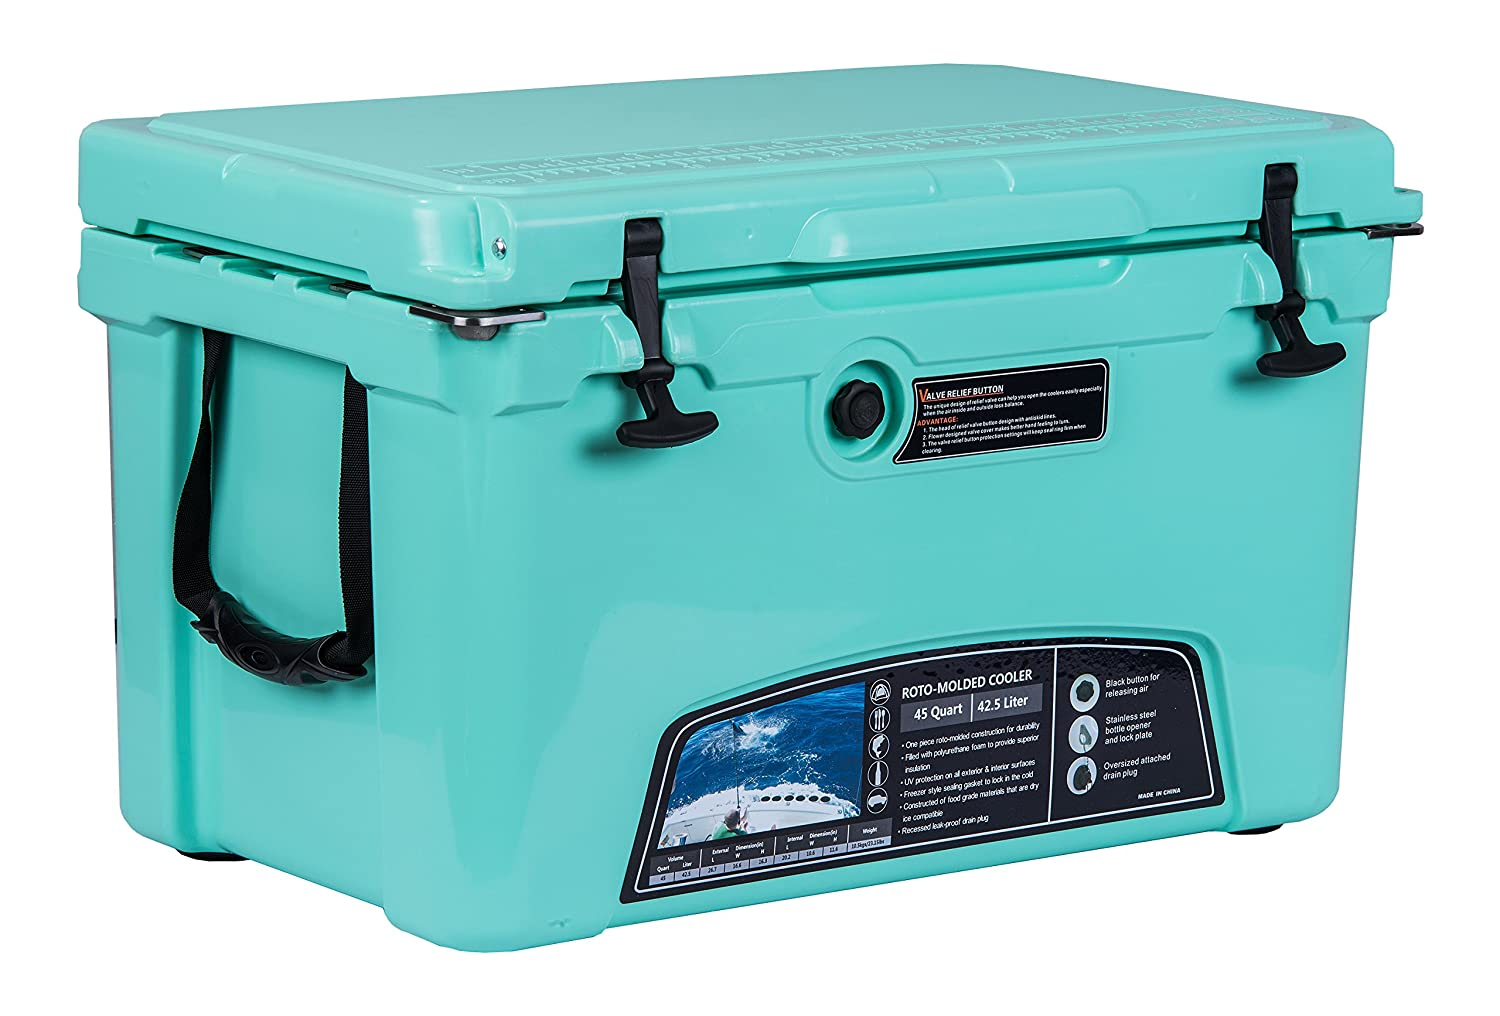 MILEE Heavy Duty Iceland Cooler with Divider, Basket and Cup holder, 45 QT